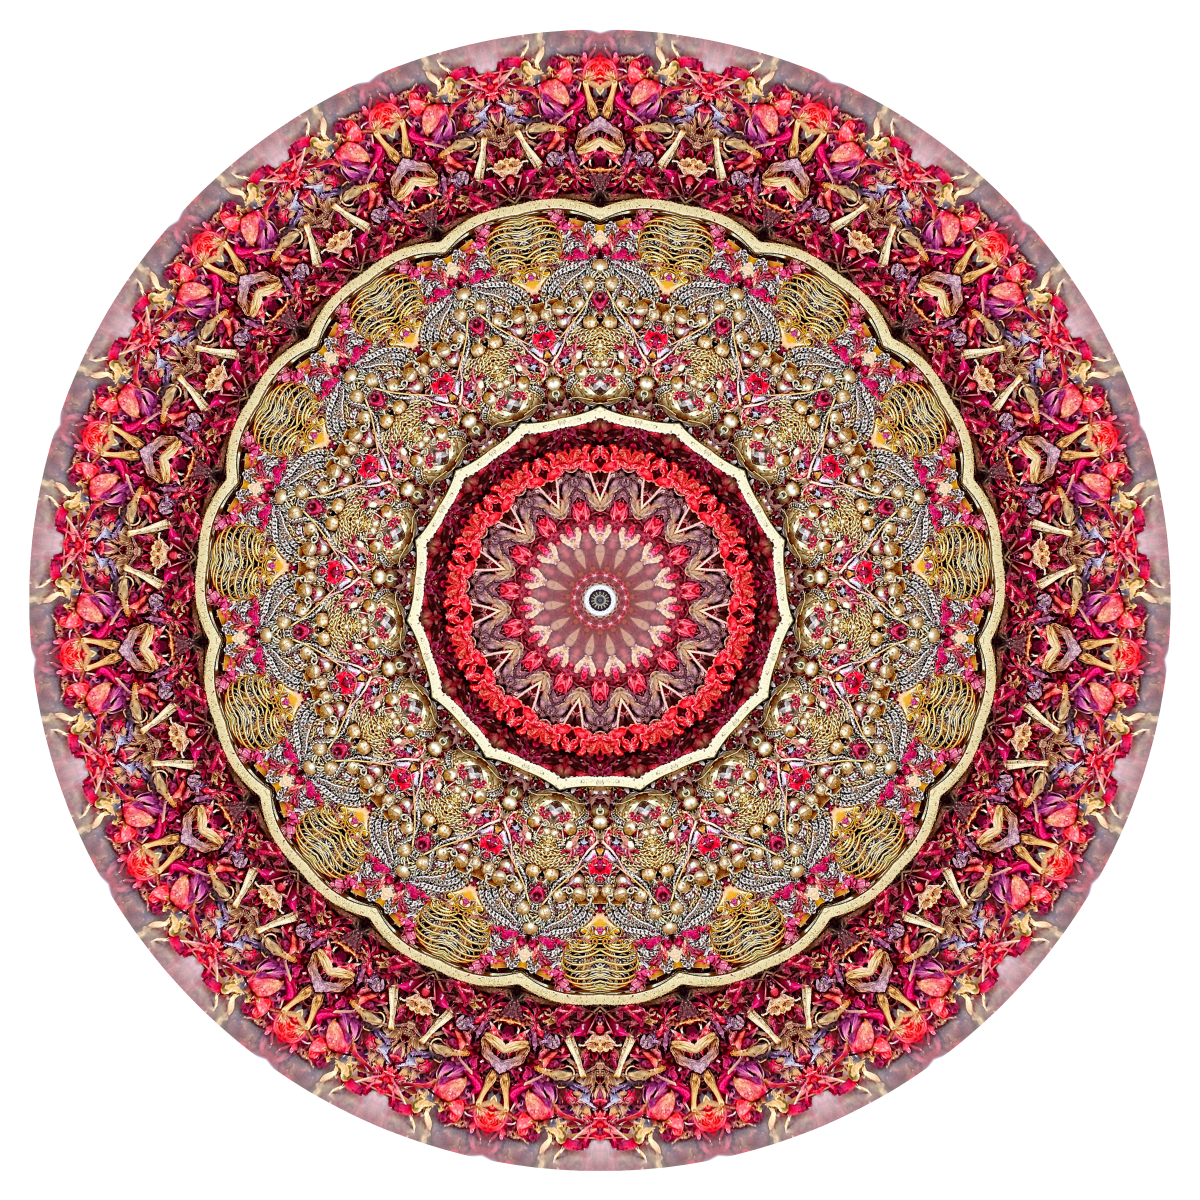 Red Mandala #1 - Stephen Calhoun